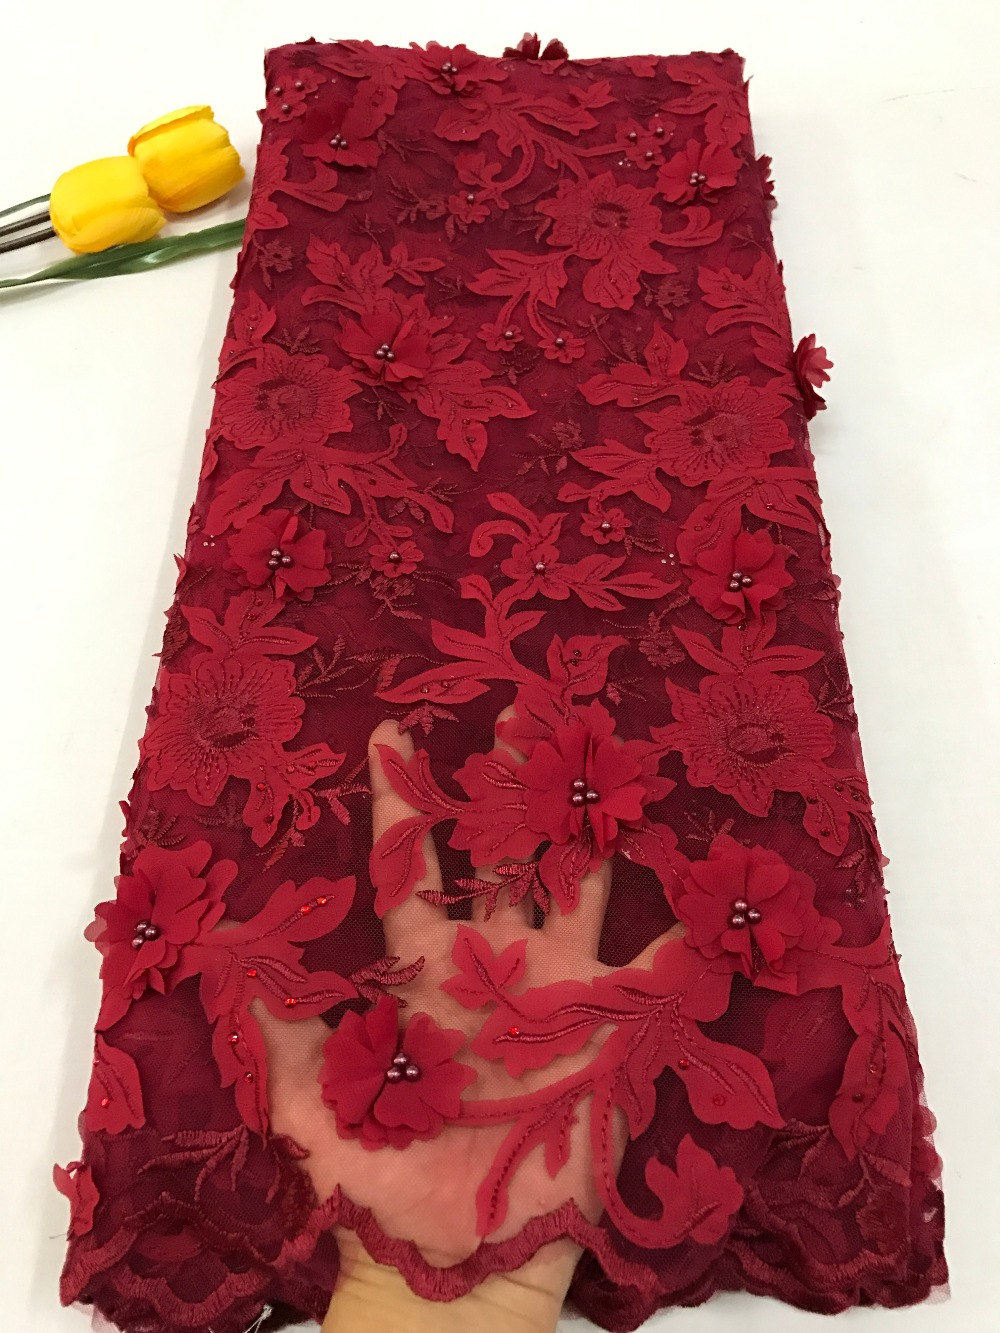 Embroidered African 3D Flower Lace Fabric Hot Sale French Lace Fabric With Pearls Red Color African Tulle Lace Fabric